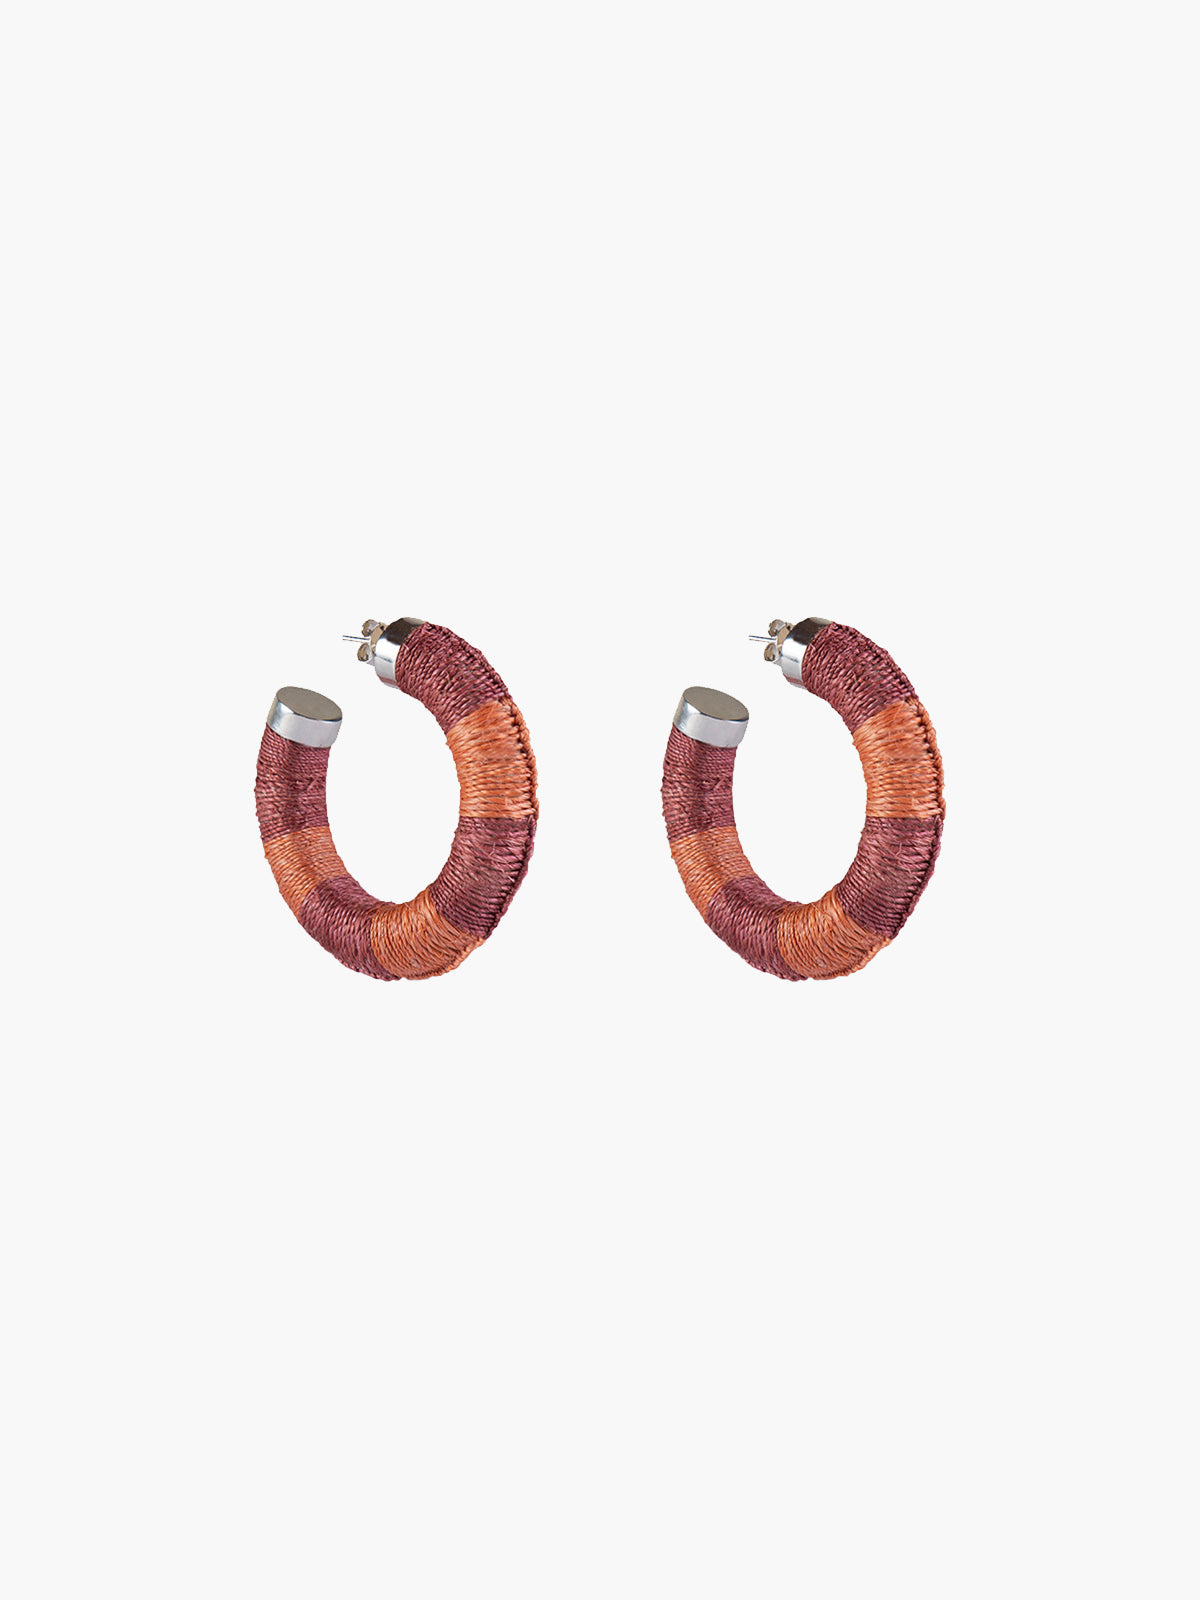 Maguey Hoops | Blush-Apricot Maguey Hoops | Blush-Apricot